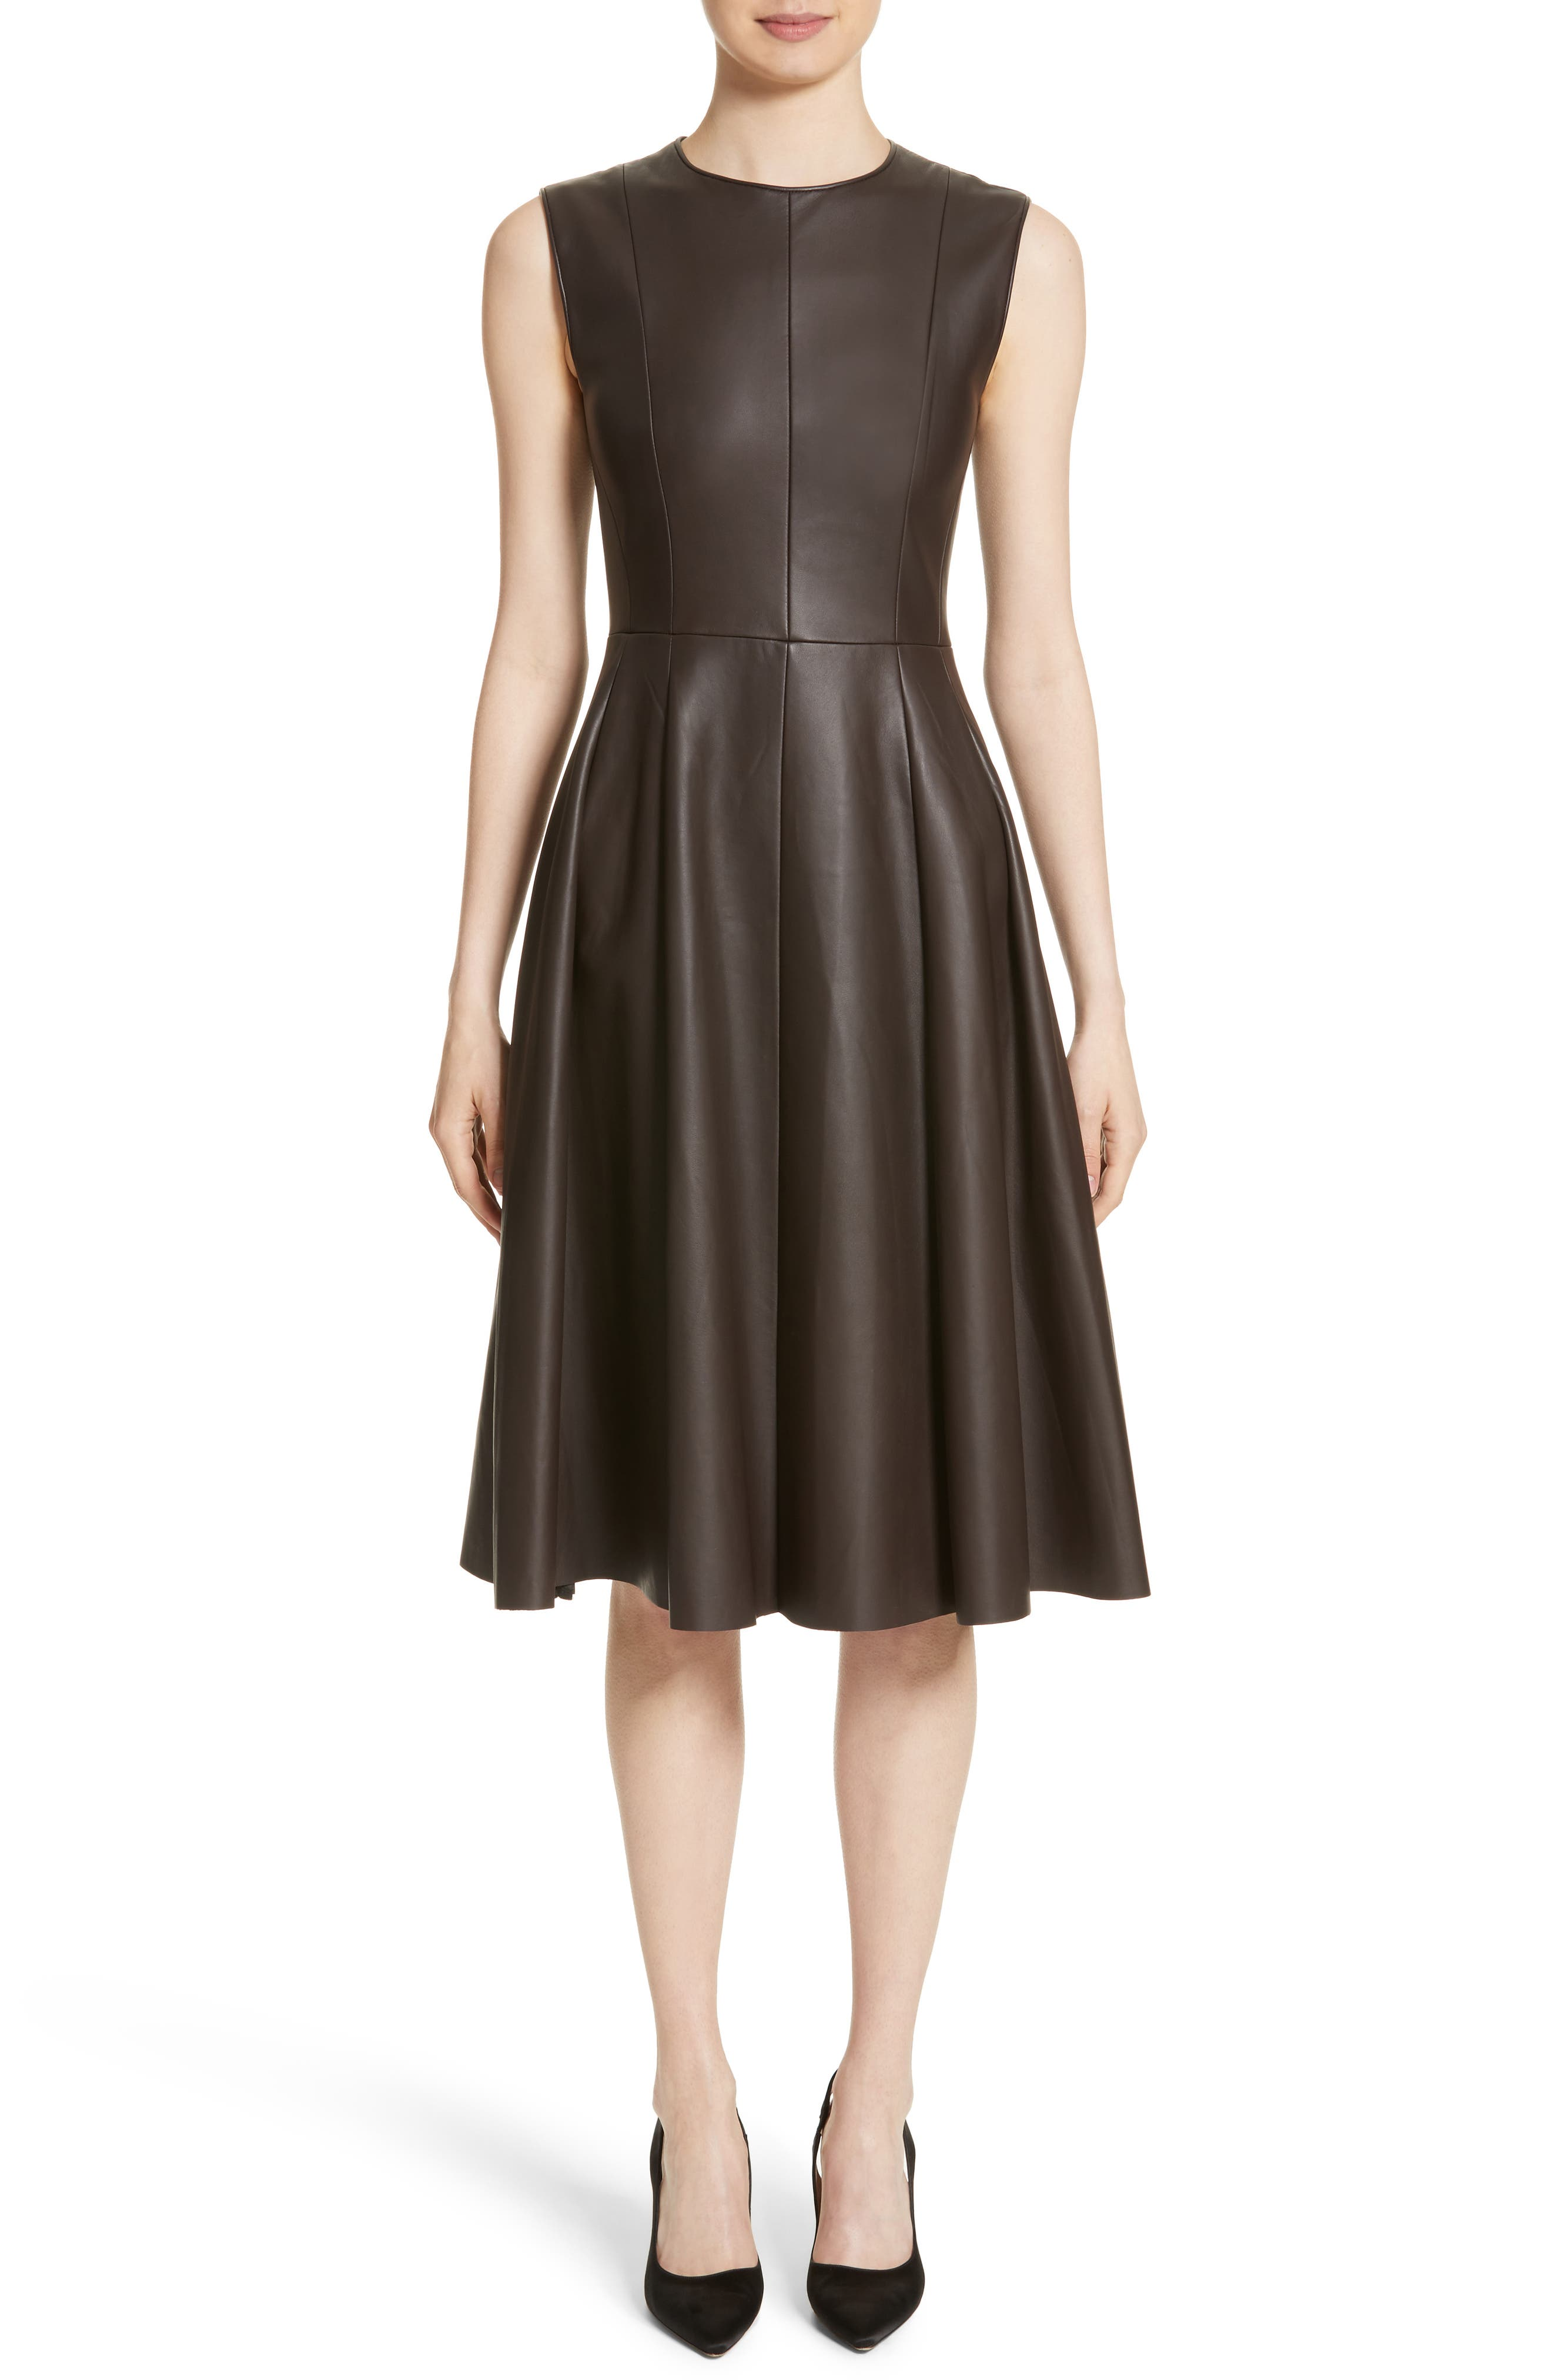 Adam Lippes Sculpted Leather Dress